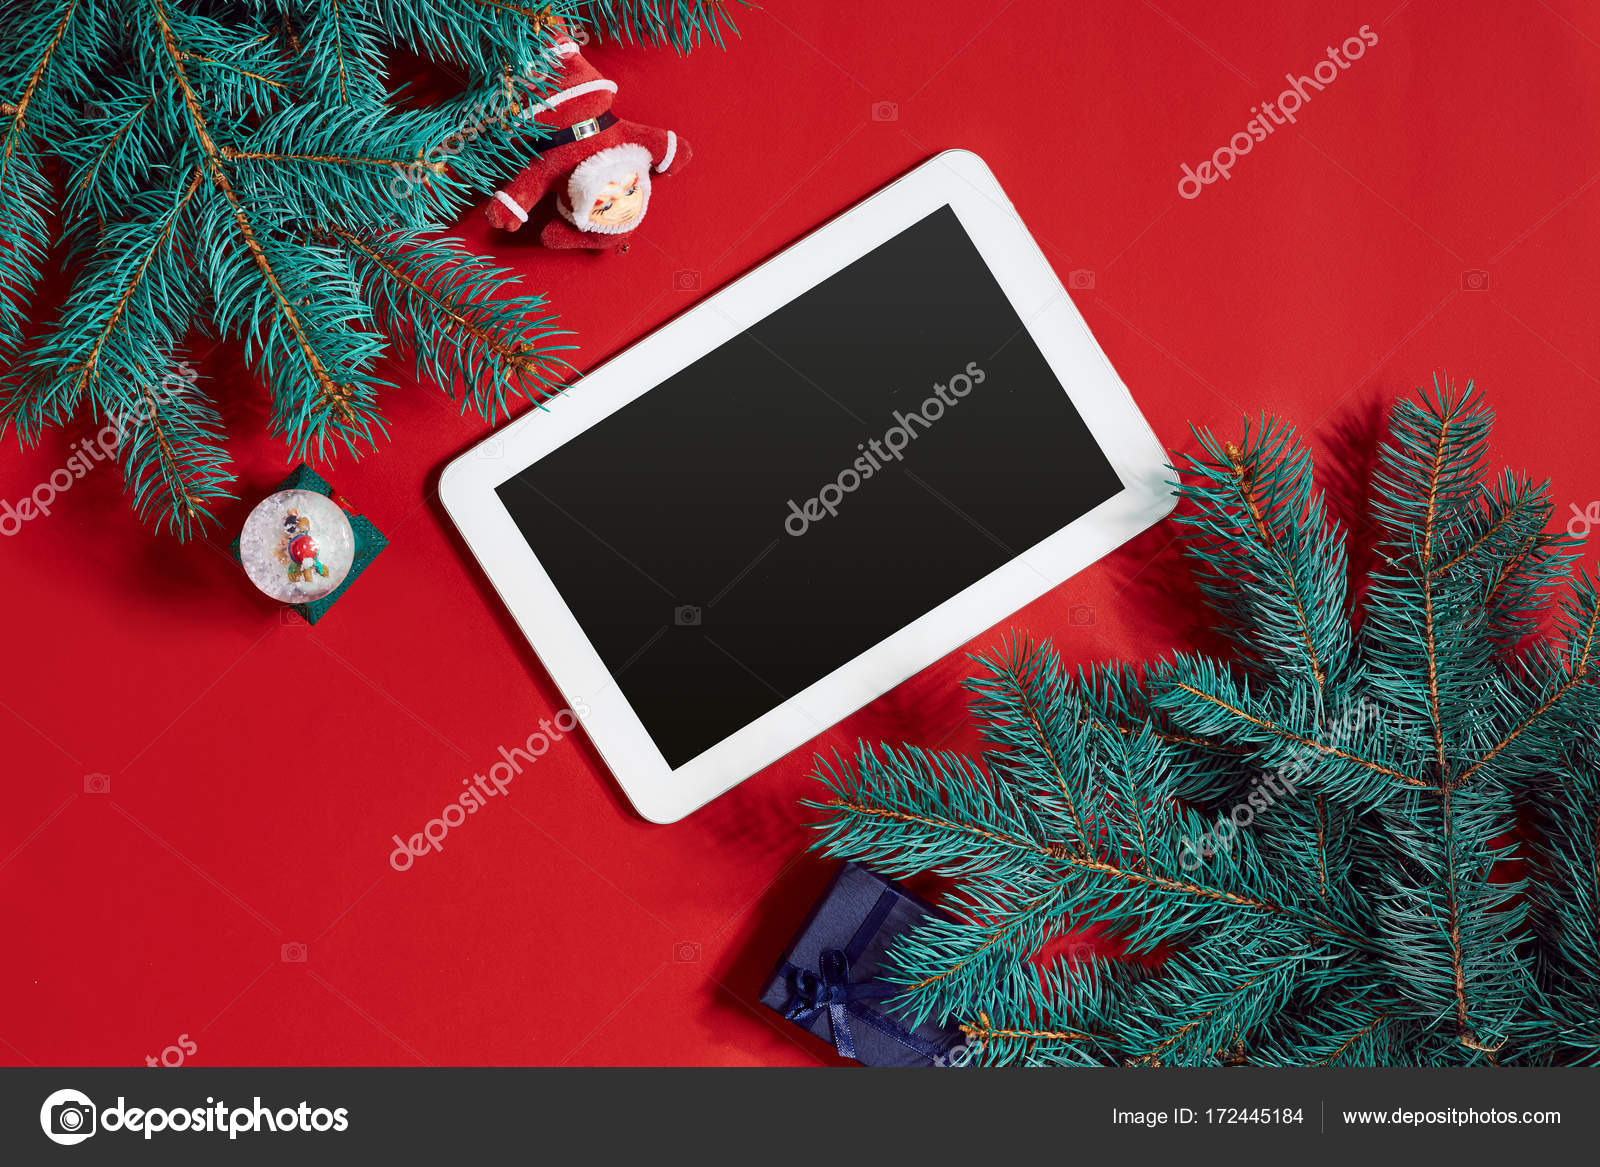 christmas decorations and white tablet with black screen on hot red background christmas and new year theme place for your text wishes logo mock up